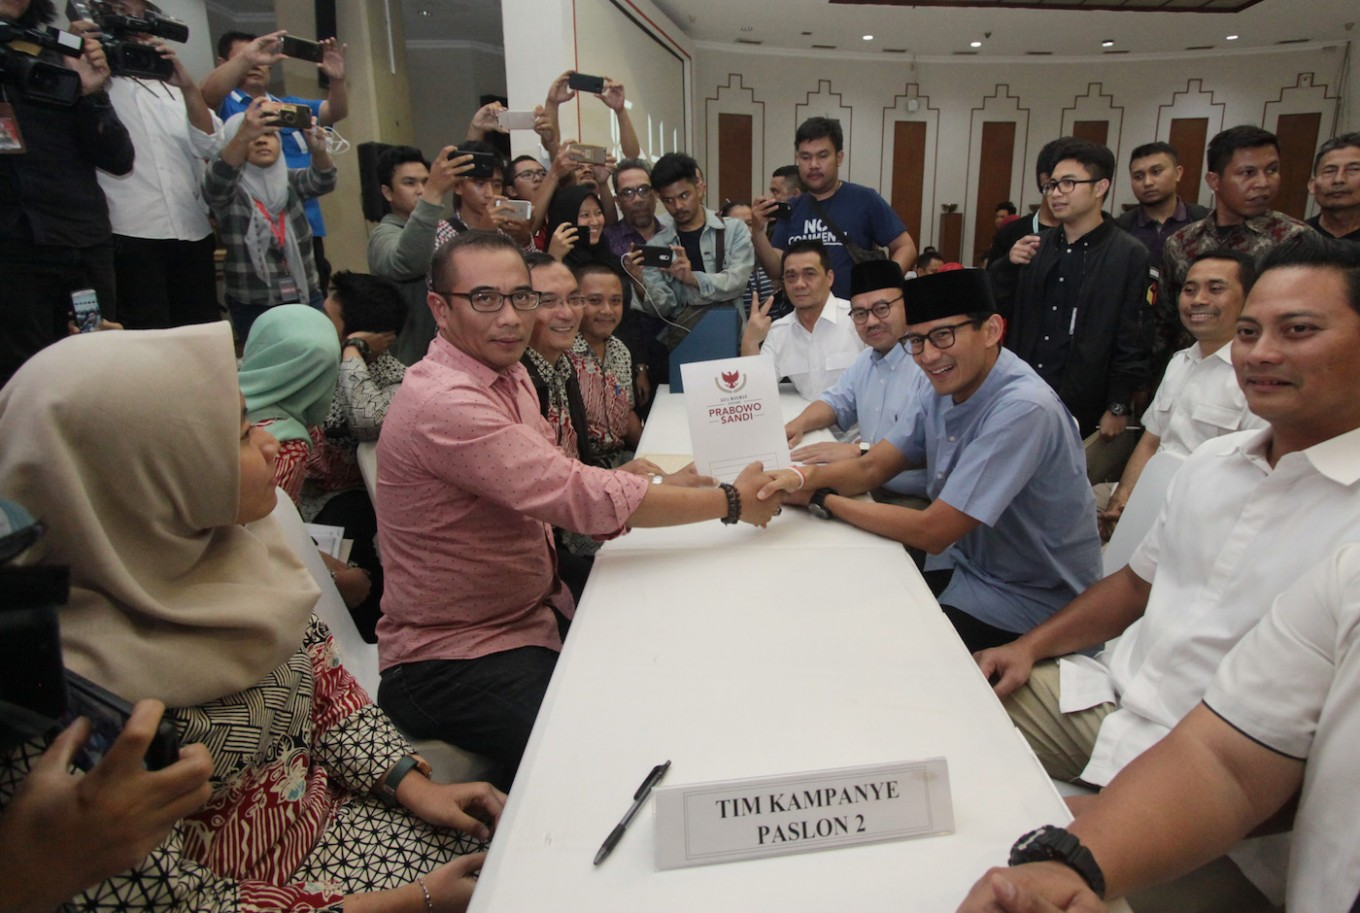 Jokowi team reports Rp 11b, Prabowo 'not much', in campaign funds